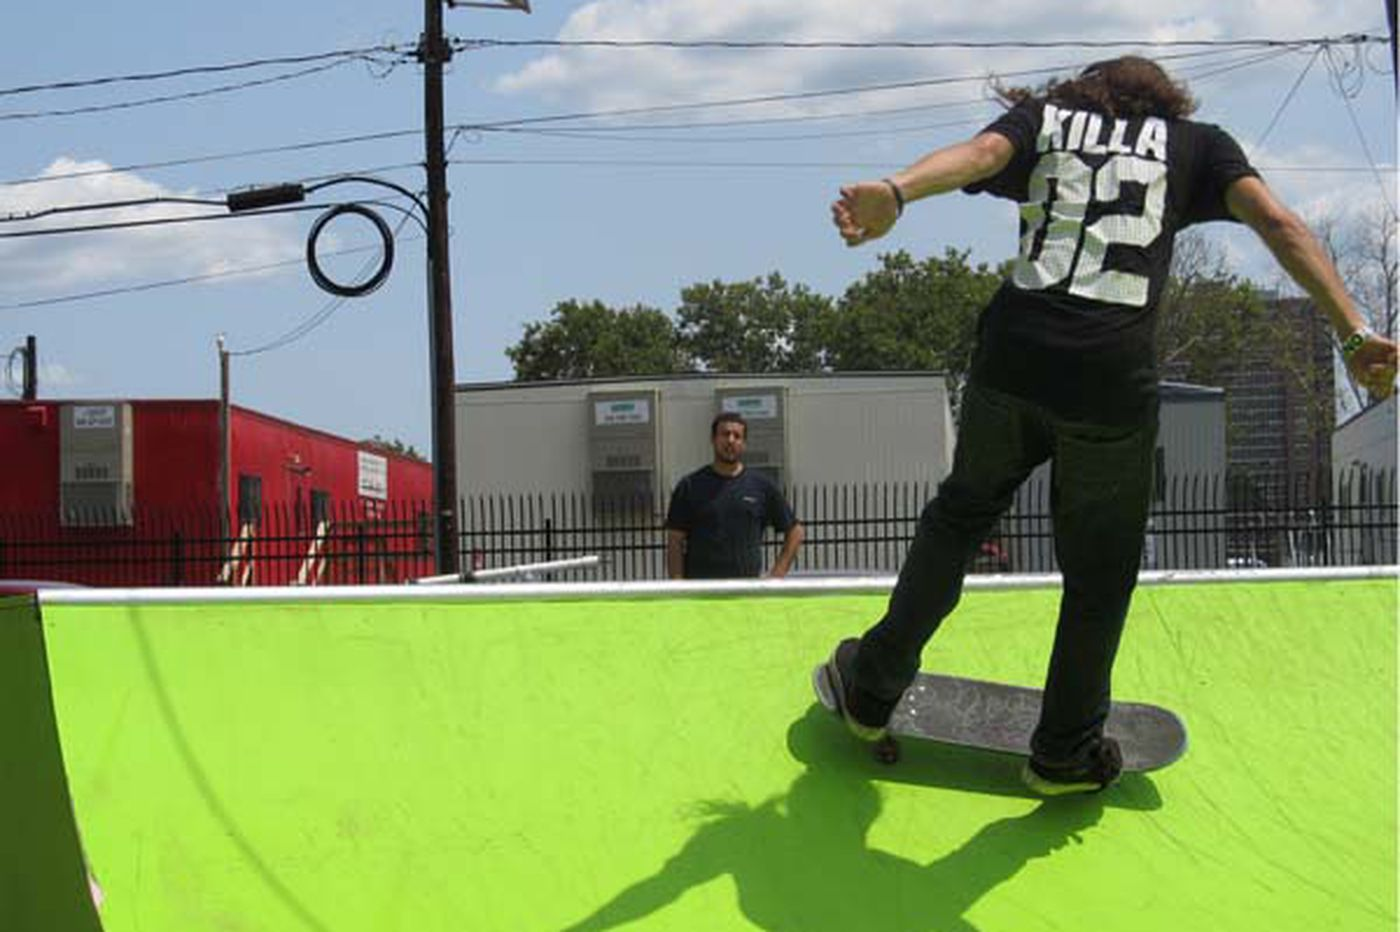 Pop-up skate park gives Camden youths an outlet